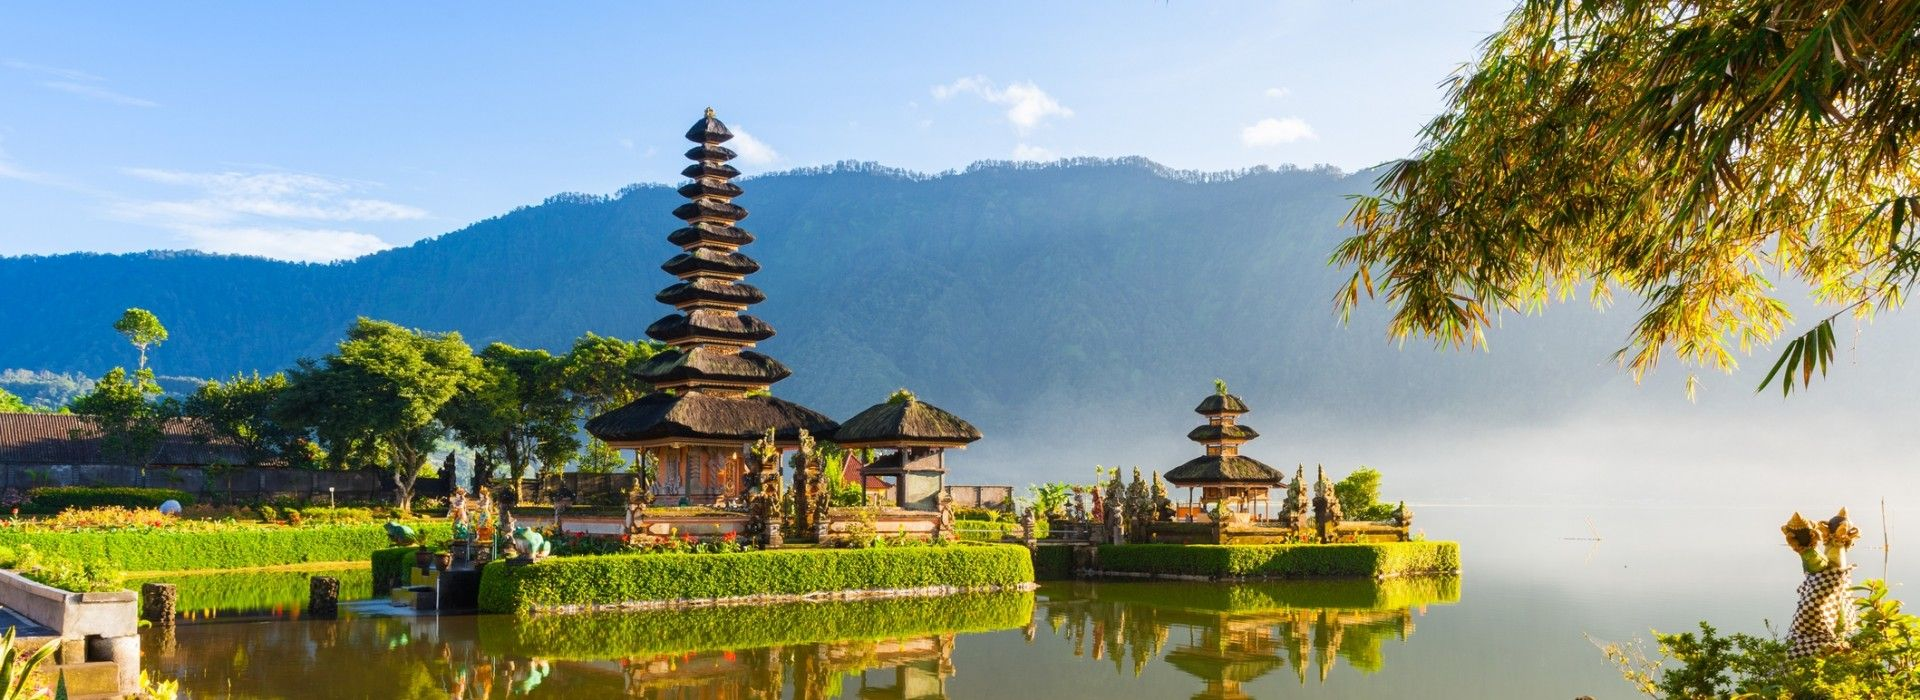 Walking tours in Indonesia